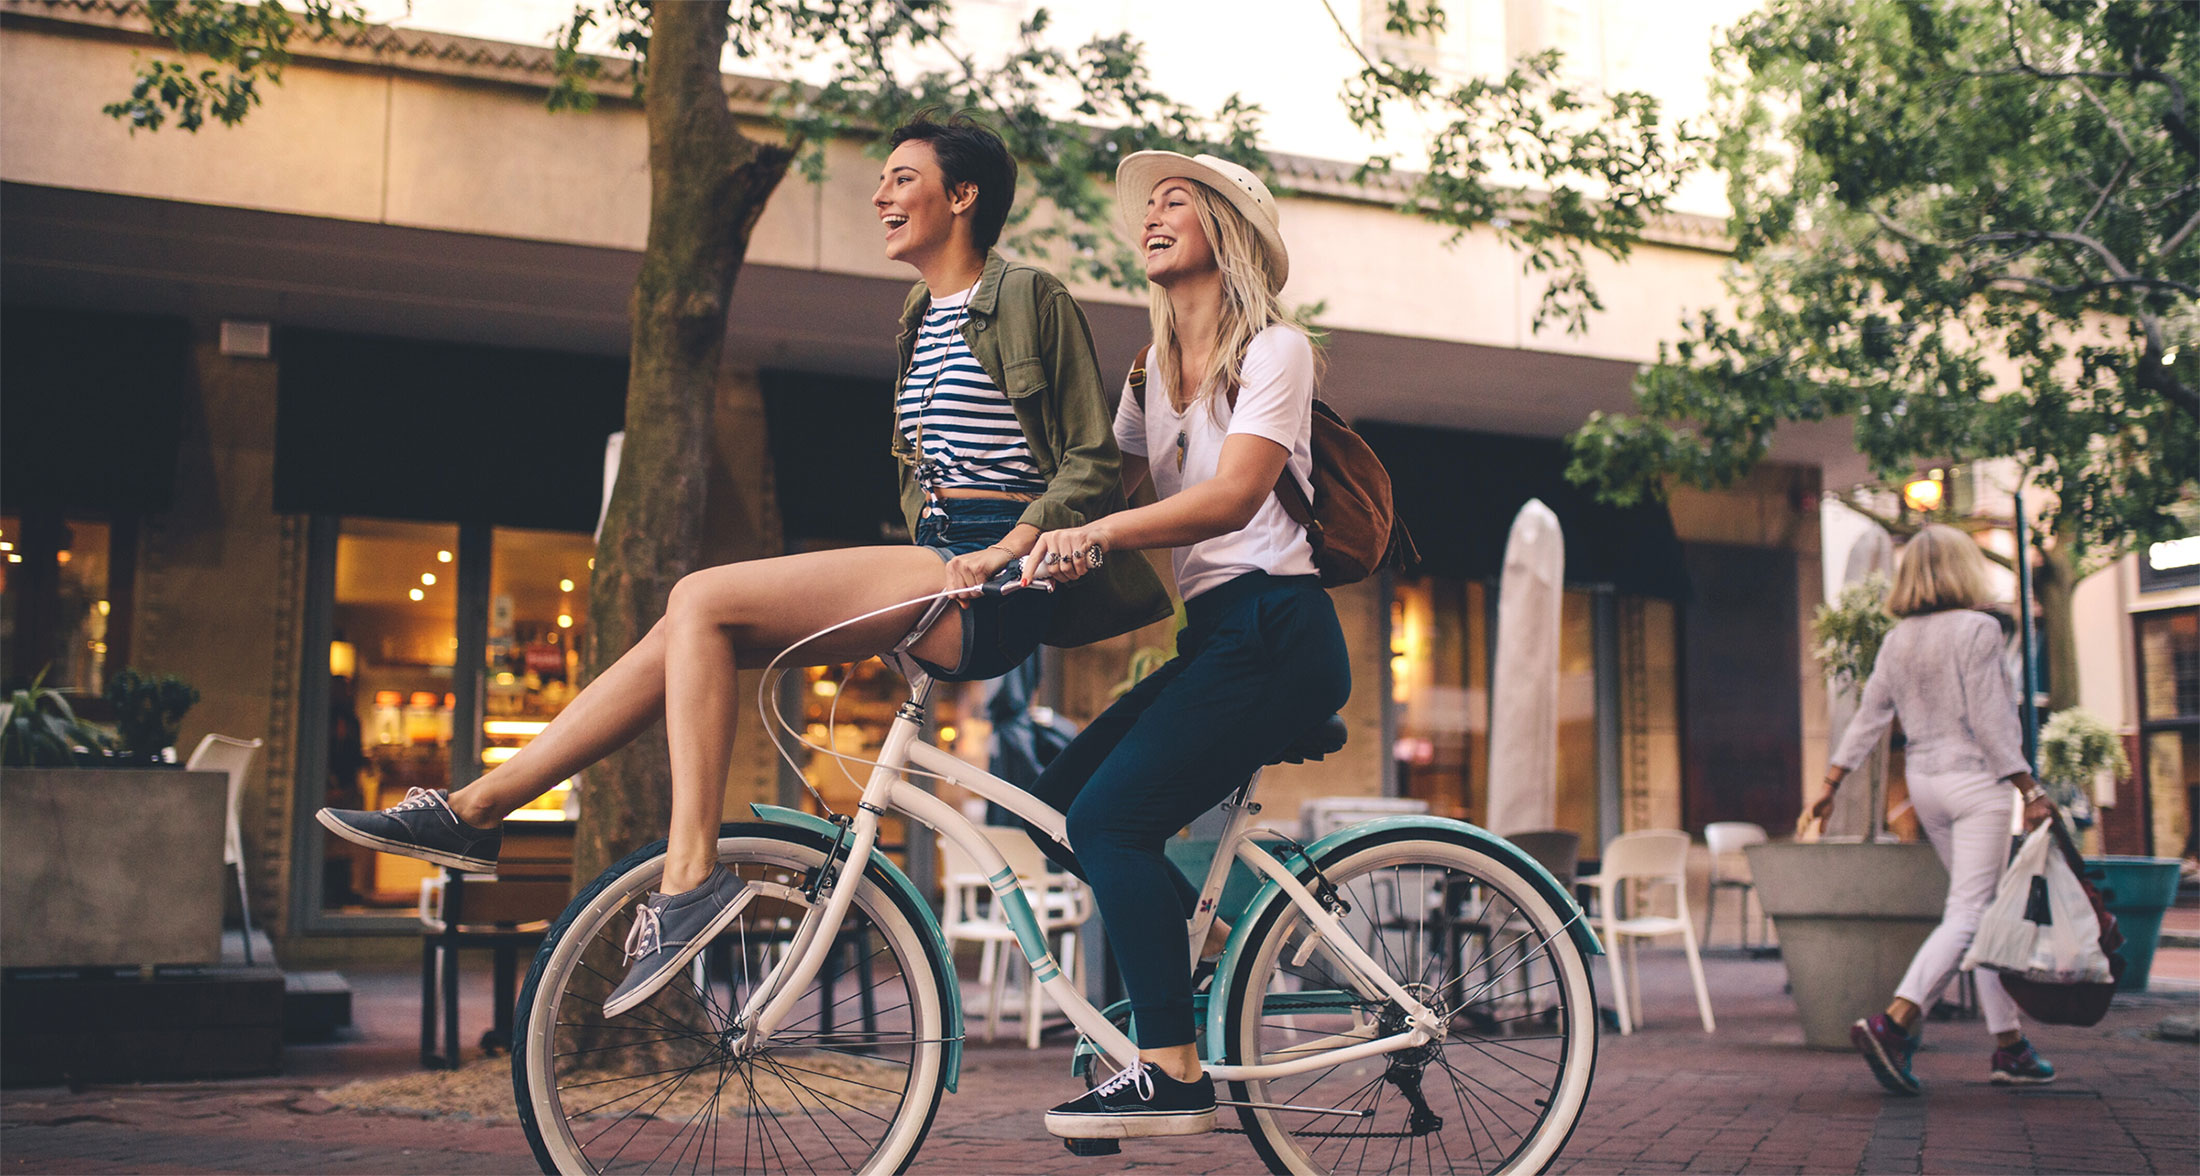 Two girlfriends on a bike.